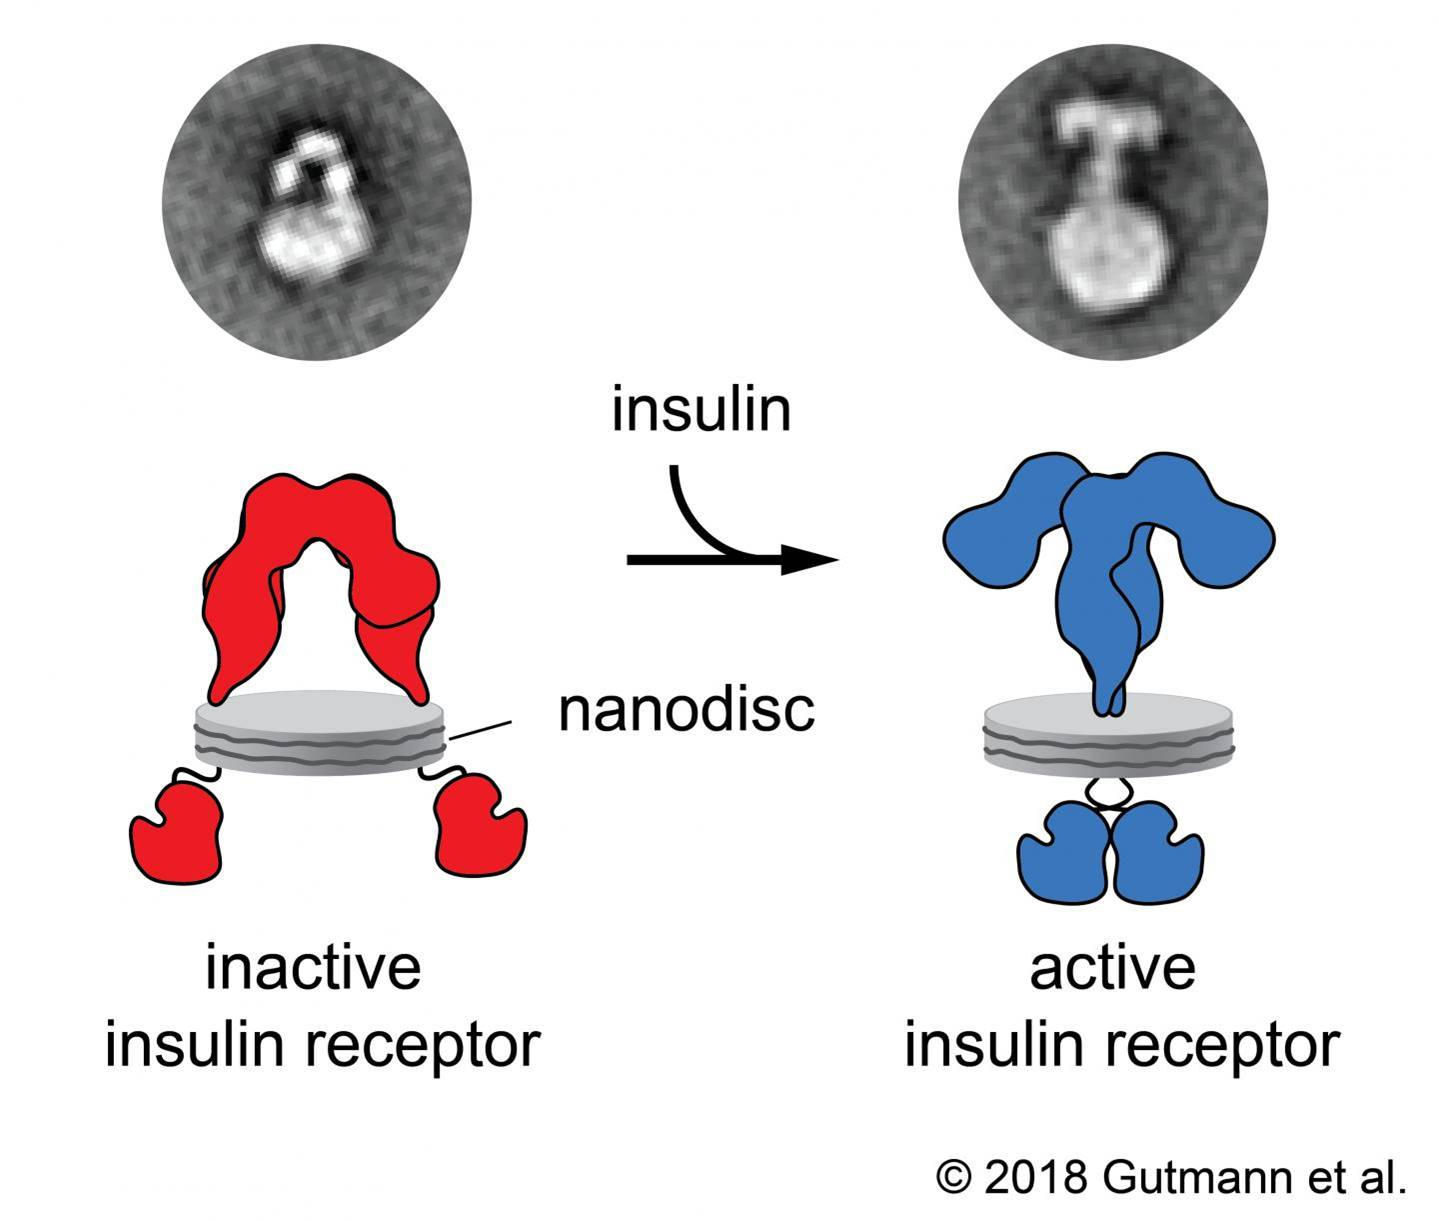 How the insulin receptor works